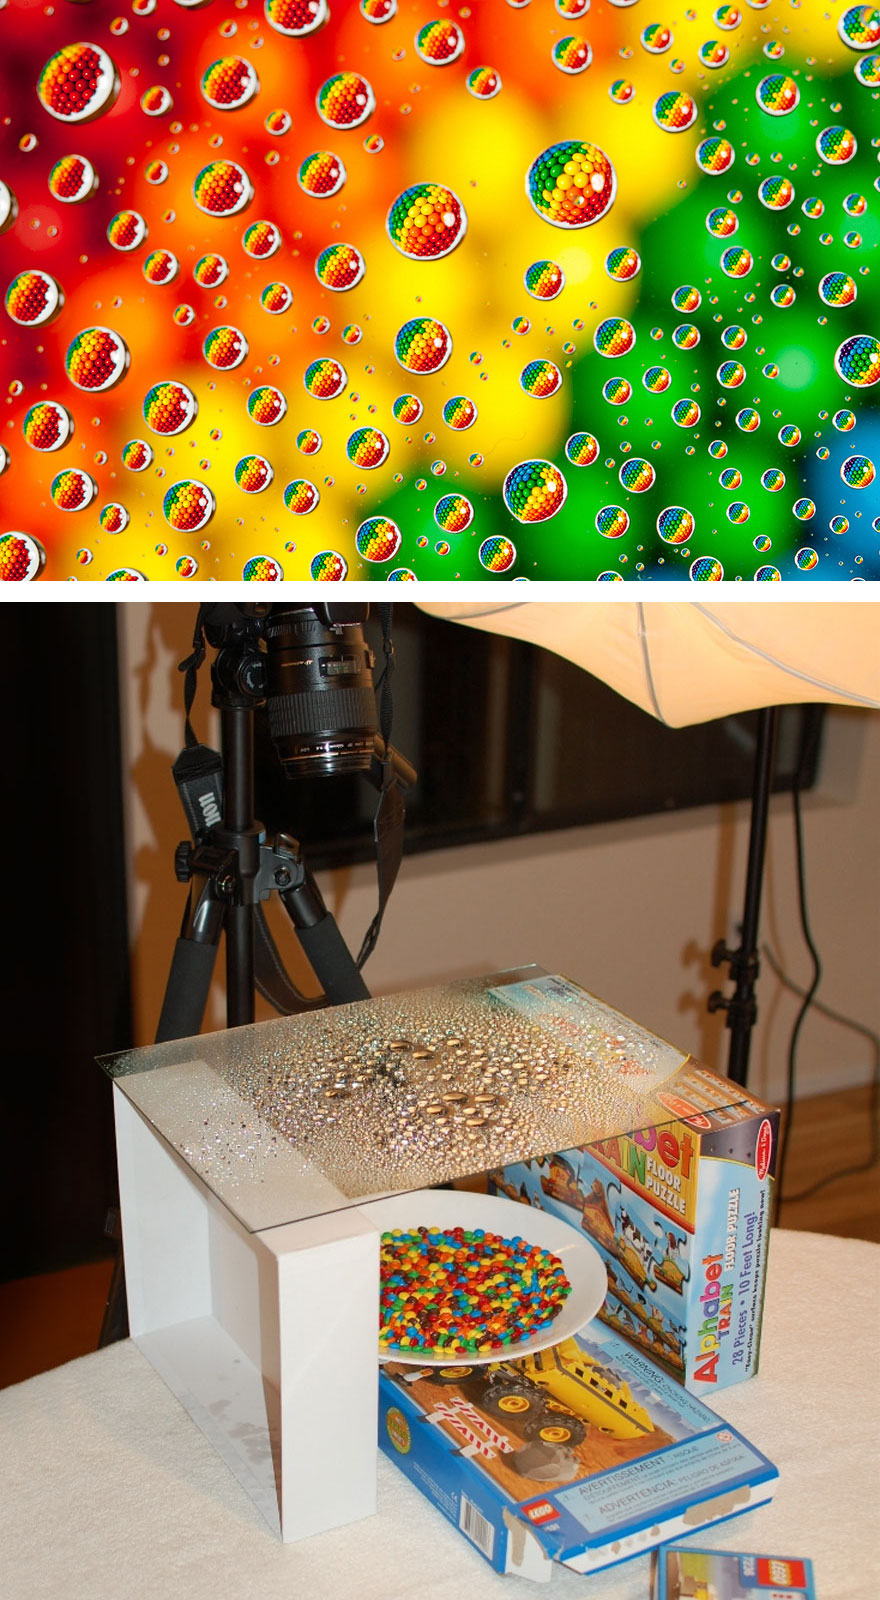 #7 M&m's In Water Drops